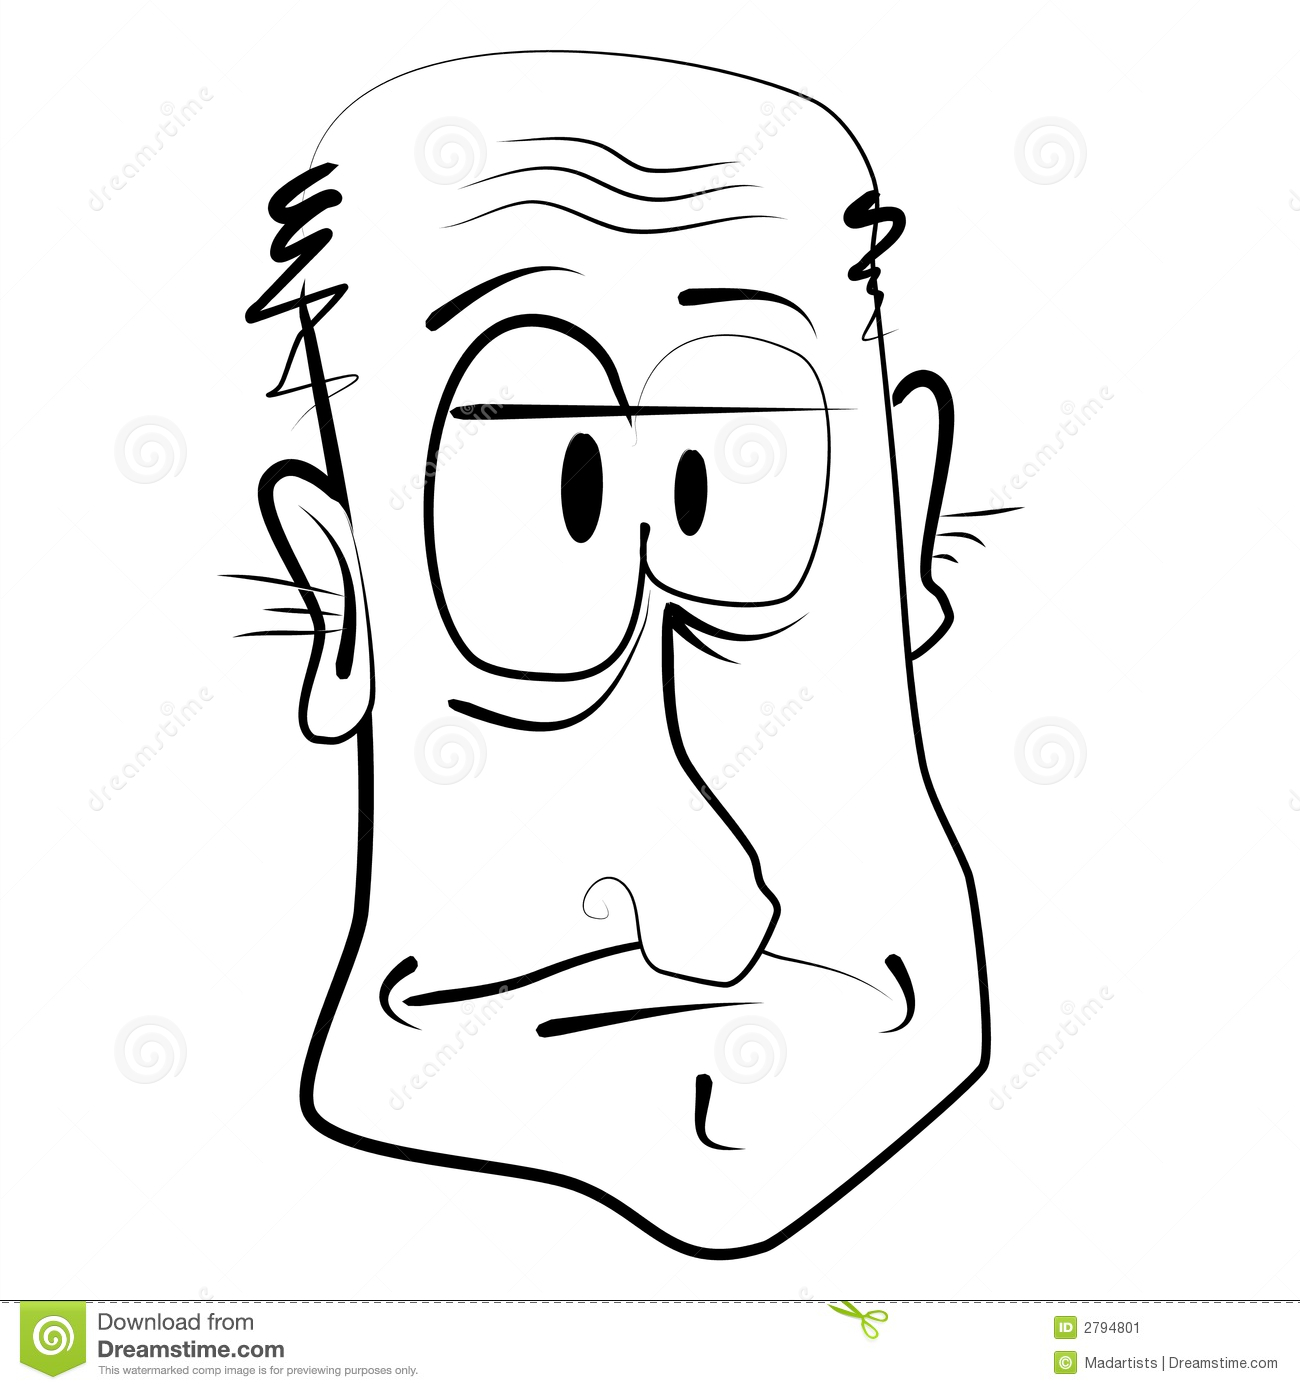 Cartoon Caricature Old Man Stock Illustrations 1 326 Cartoon Caricature Old Man Stock Illustrations Vectors Clipart Dreamstime